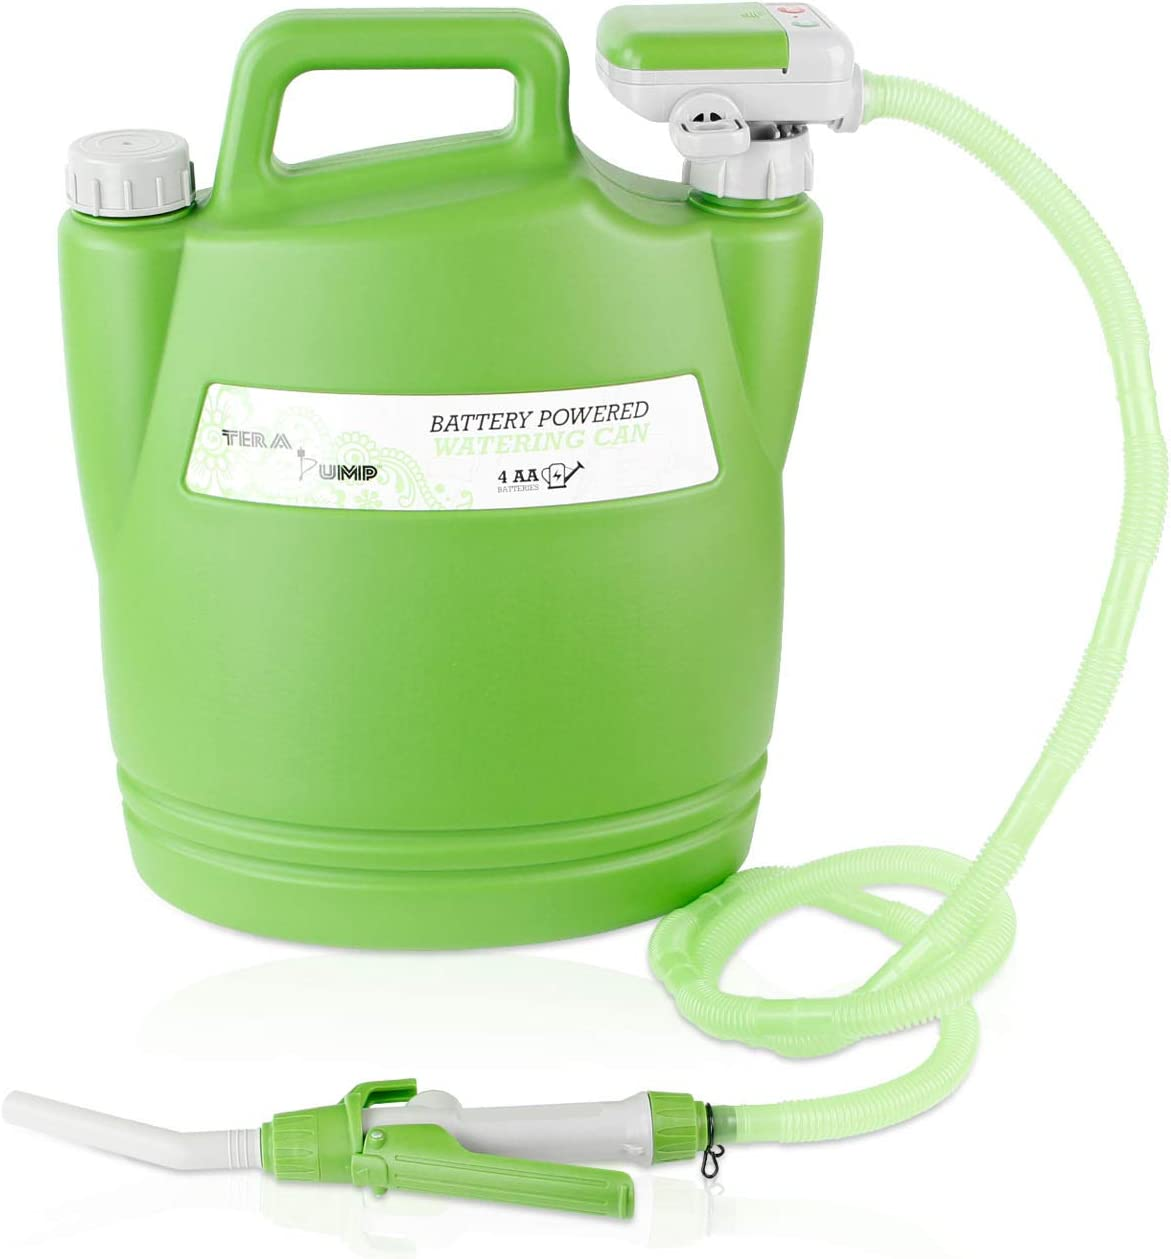 TERA PUMP - Save Your Back - No More Watering Can Lifting/Electric Water Transfer Pump for Watering Your Garden (Large Hose)